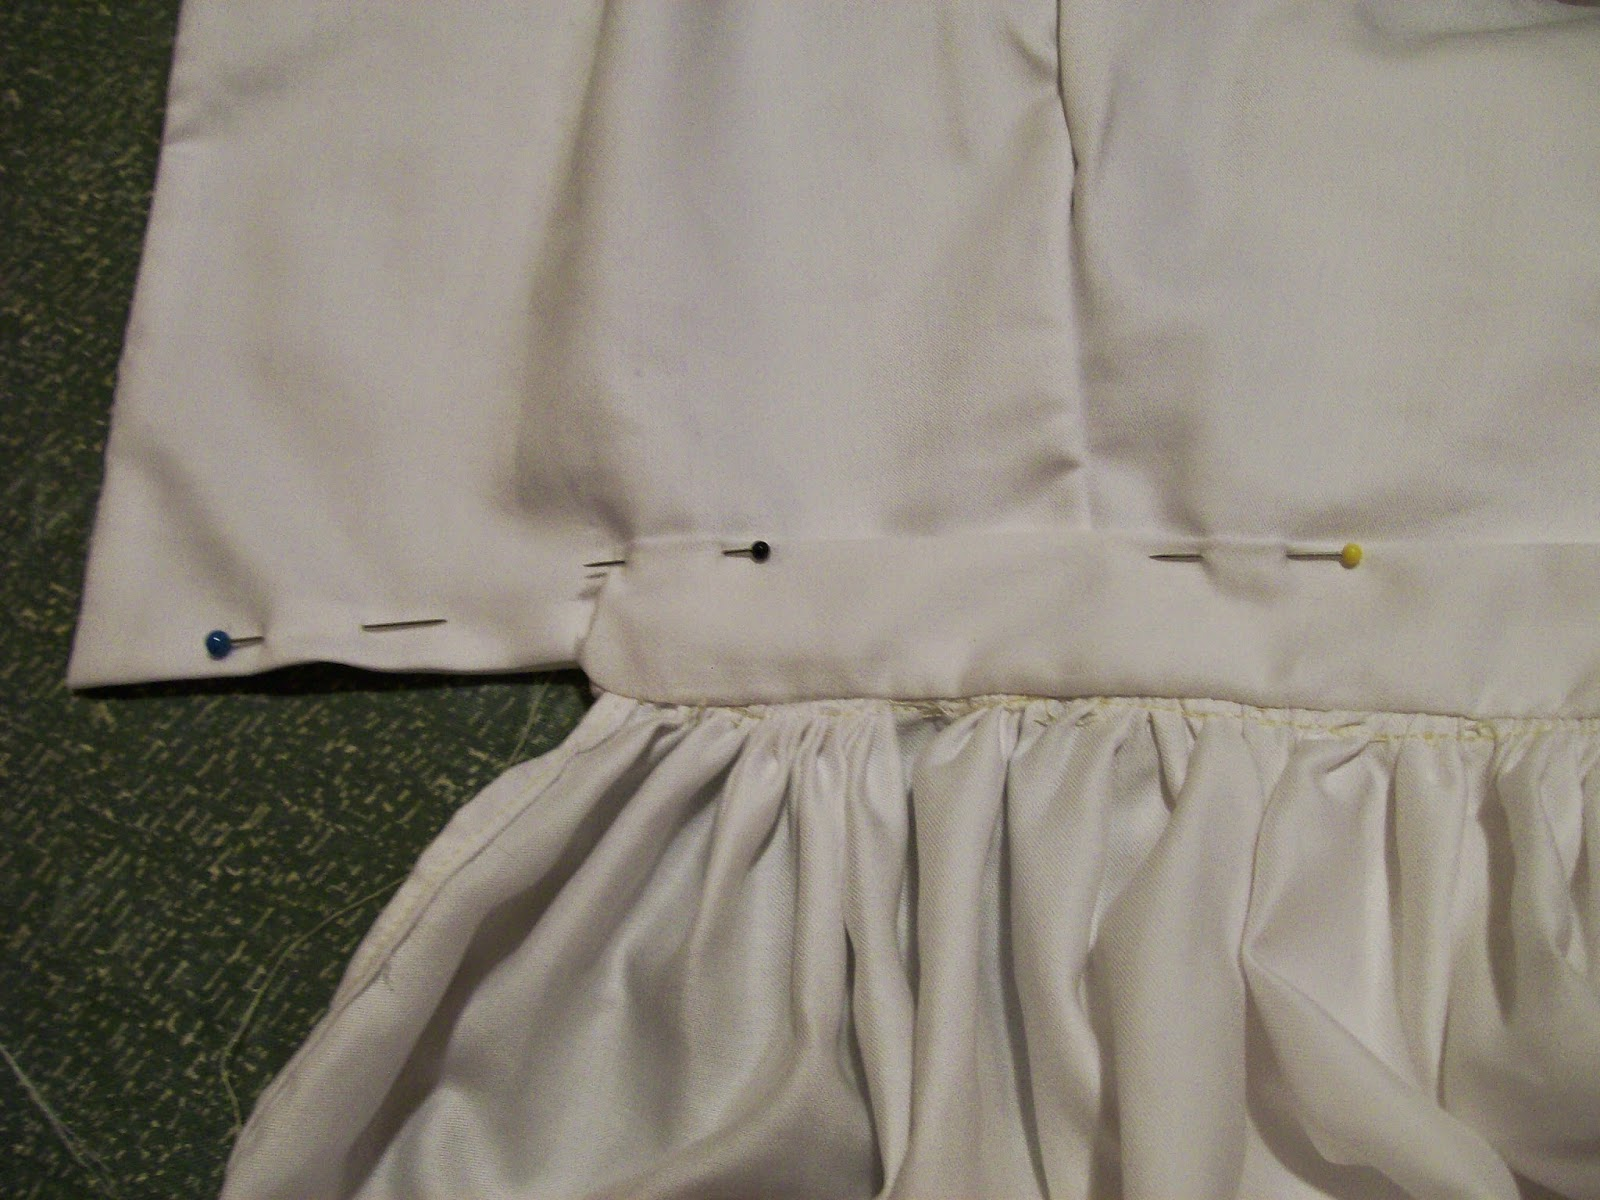 Finishing the bodice placket.